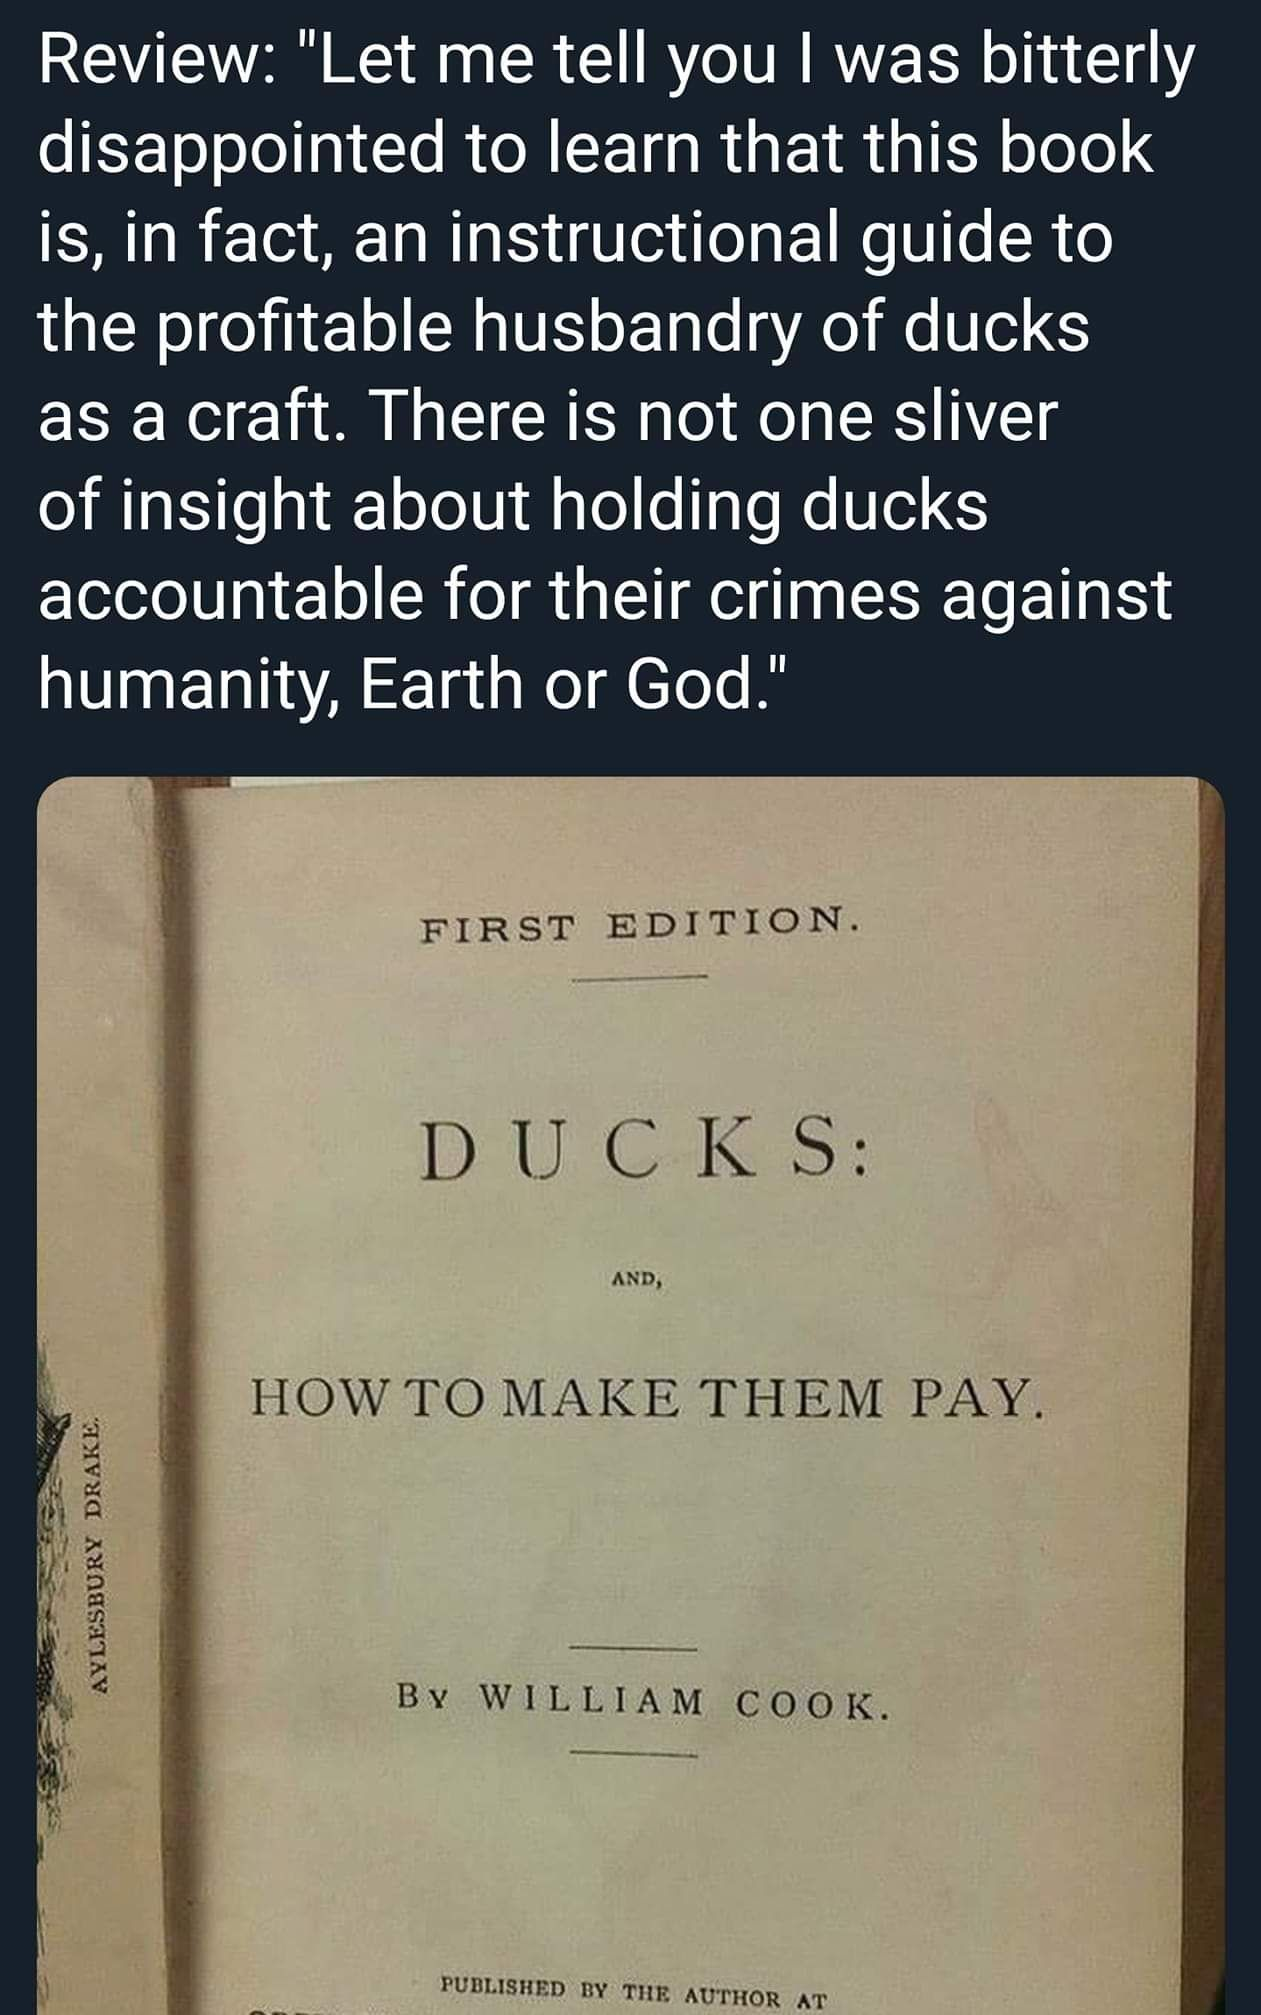 How to make ducks pay.